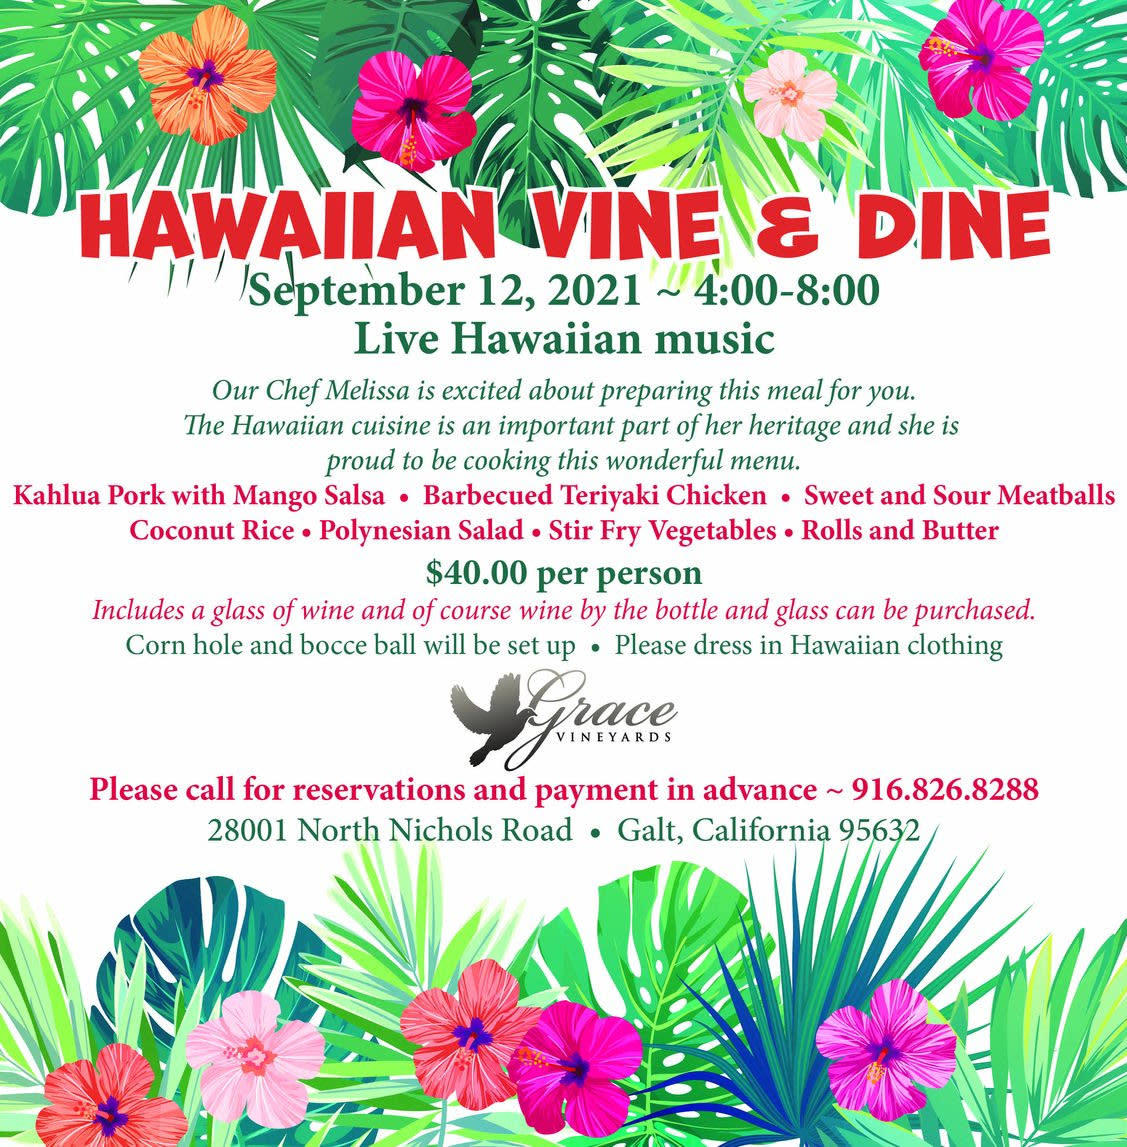 Grace Vineyards Hawaiian Vine & Dine flyer - September 12 2021 from 4:00 pm to 8:00 pm $40 per person